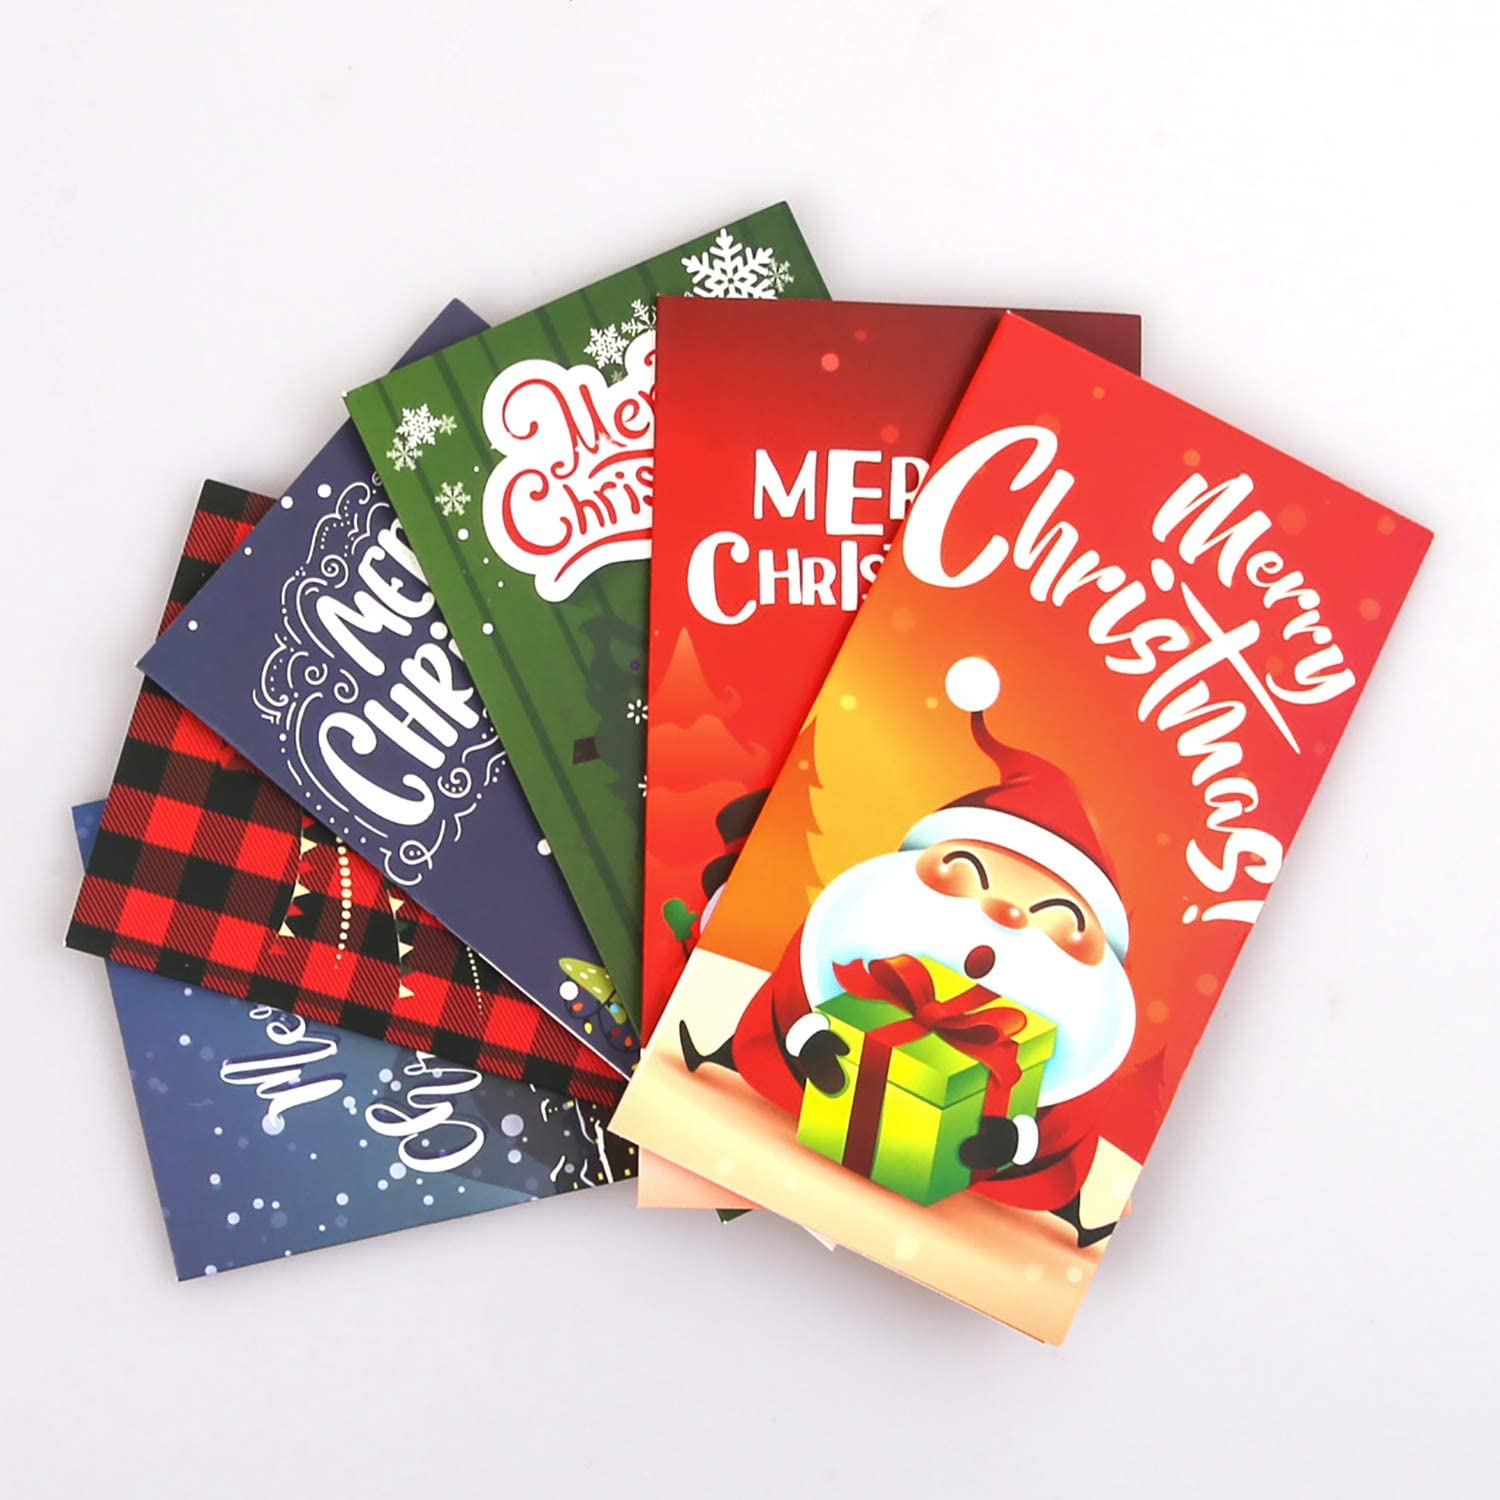 Aneco 36 Sets Christmas Money Cards Holder Christmas Wishes Gift Card Paper Holder with Envelopes for Xmas Holiday Supplies